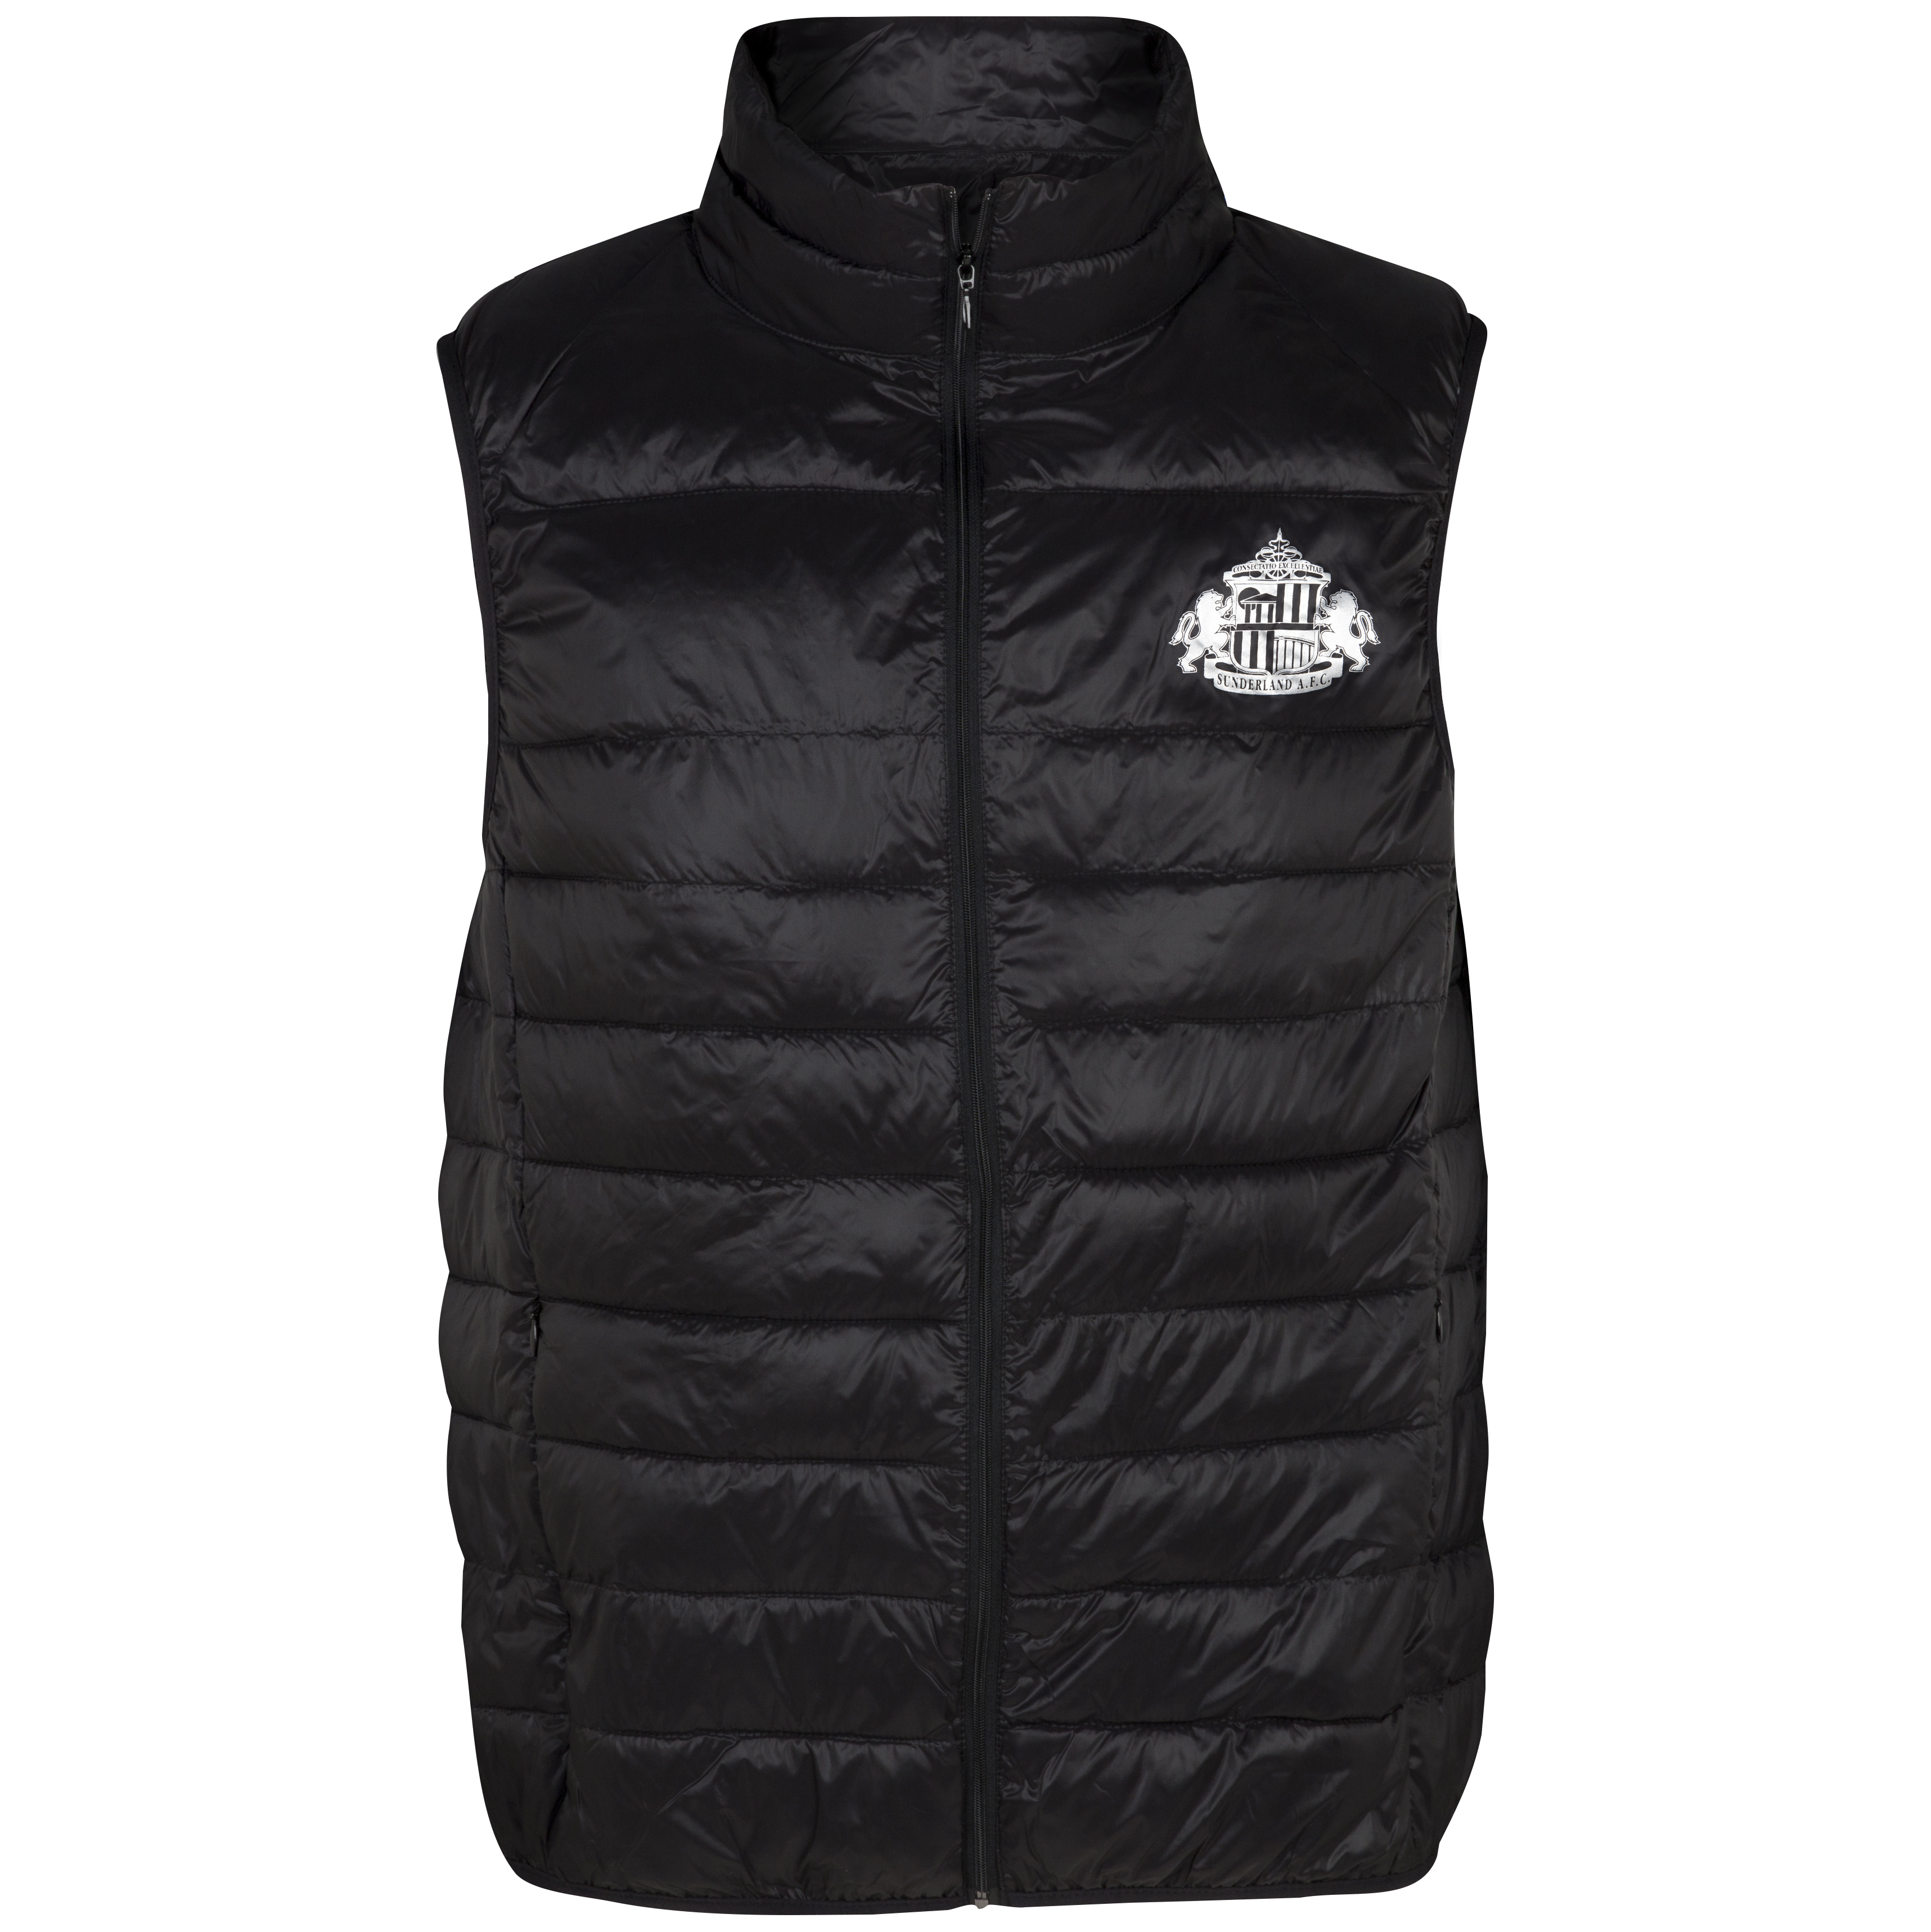 Sunderland Performance Berg Gilet - Black - Older Boys